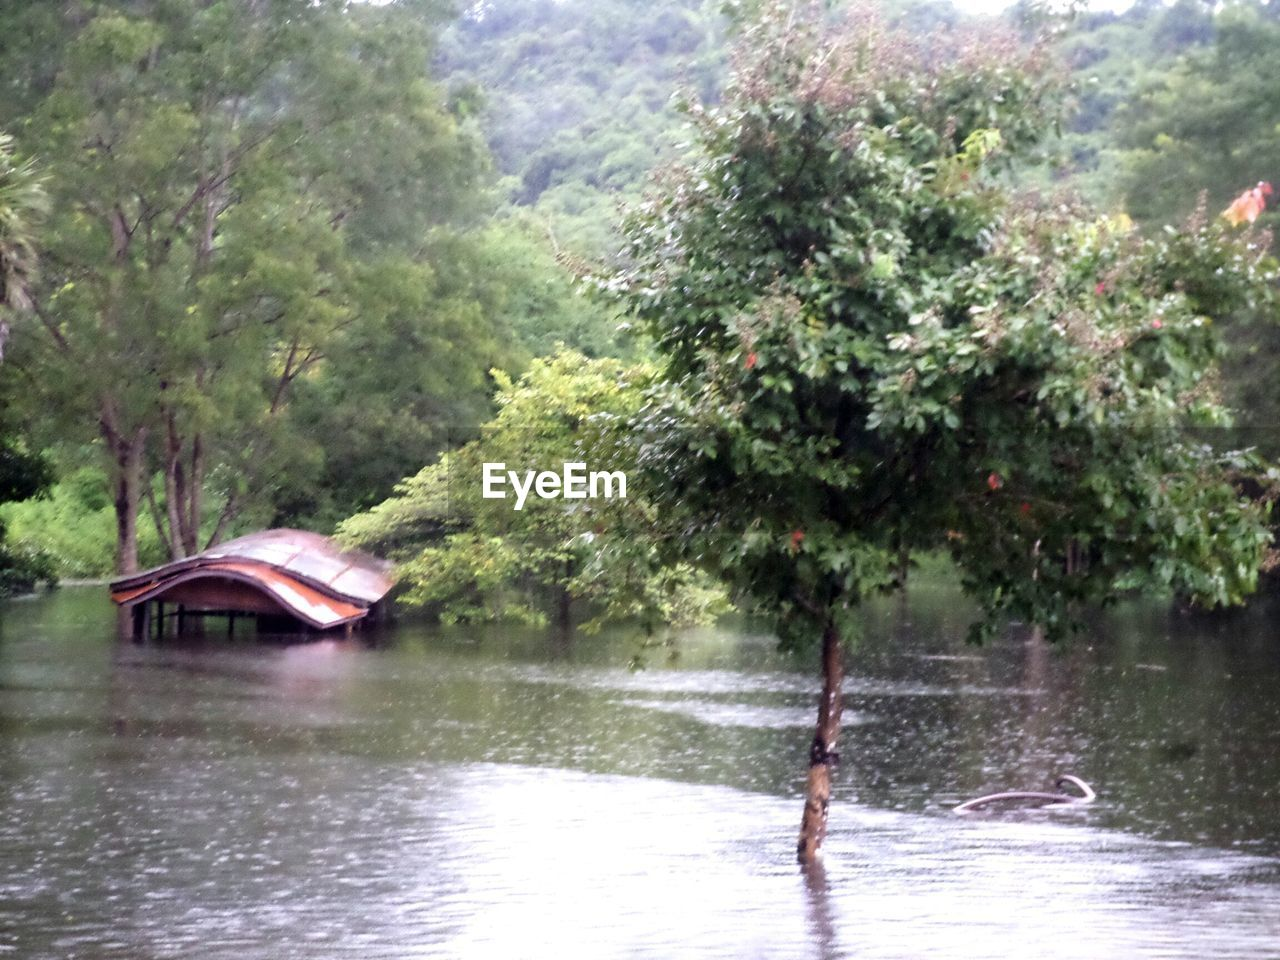 SCENIC VIEW OF RIVER AGAINST TREES IN FOREST